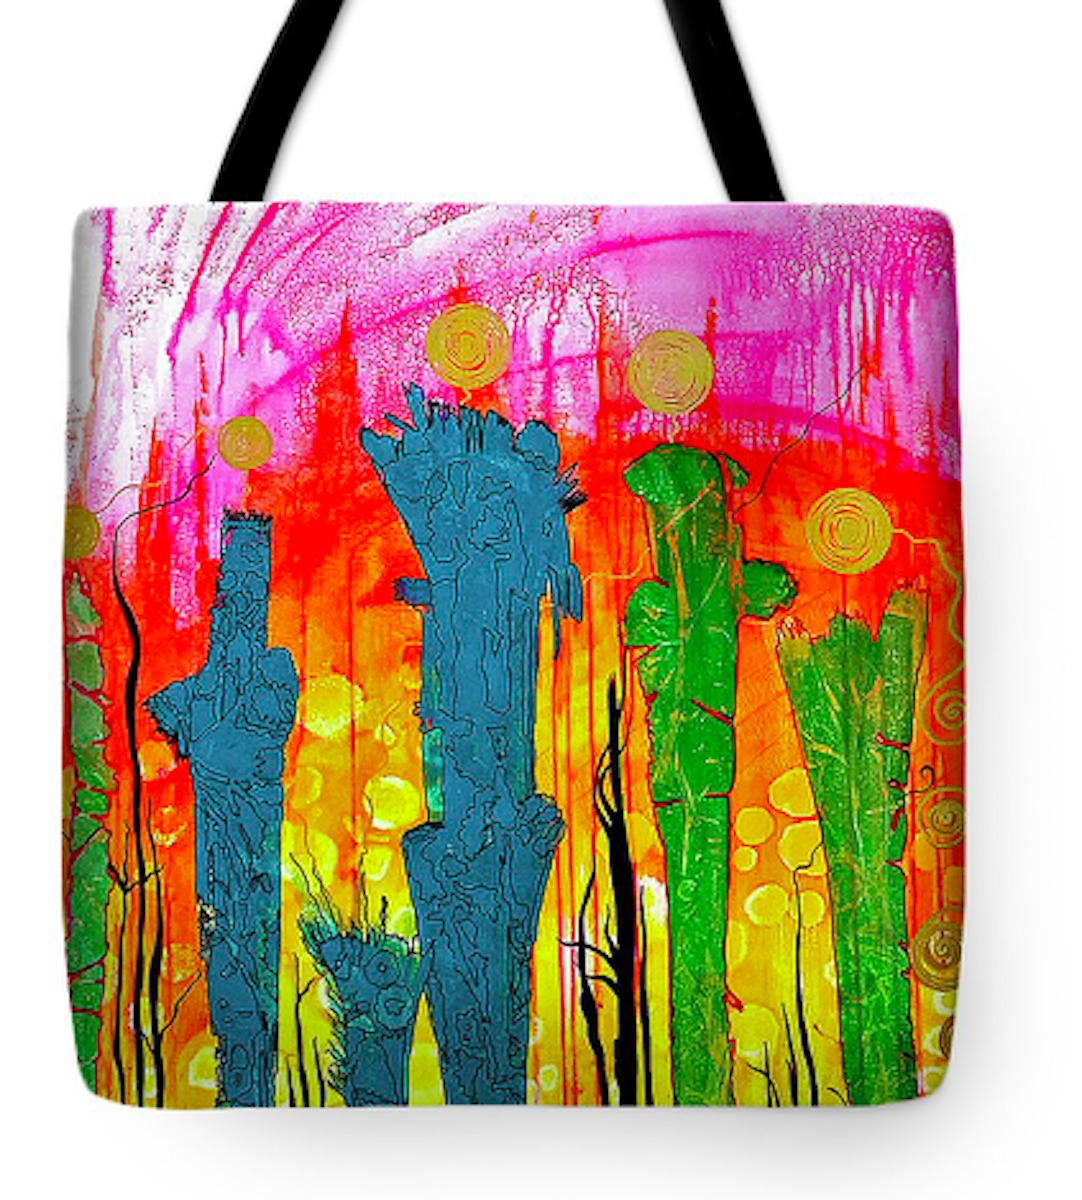 The Source Tote Bag (large view)